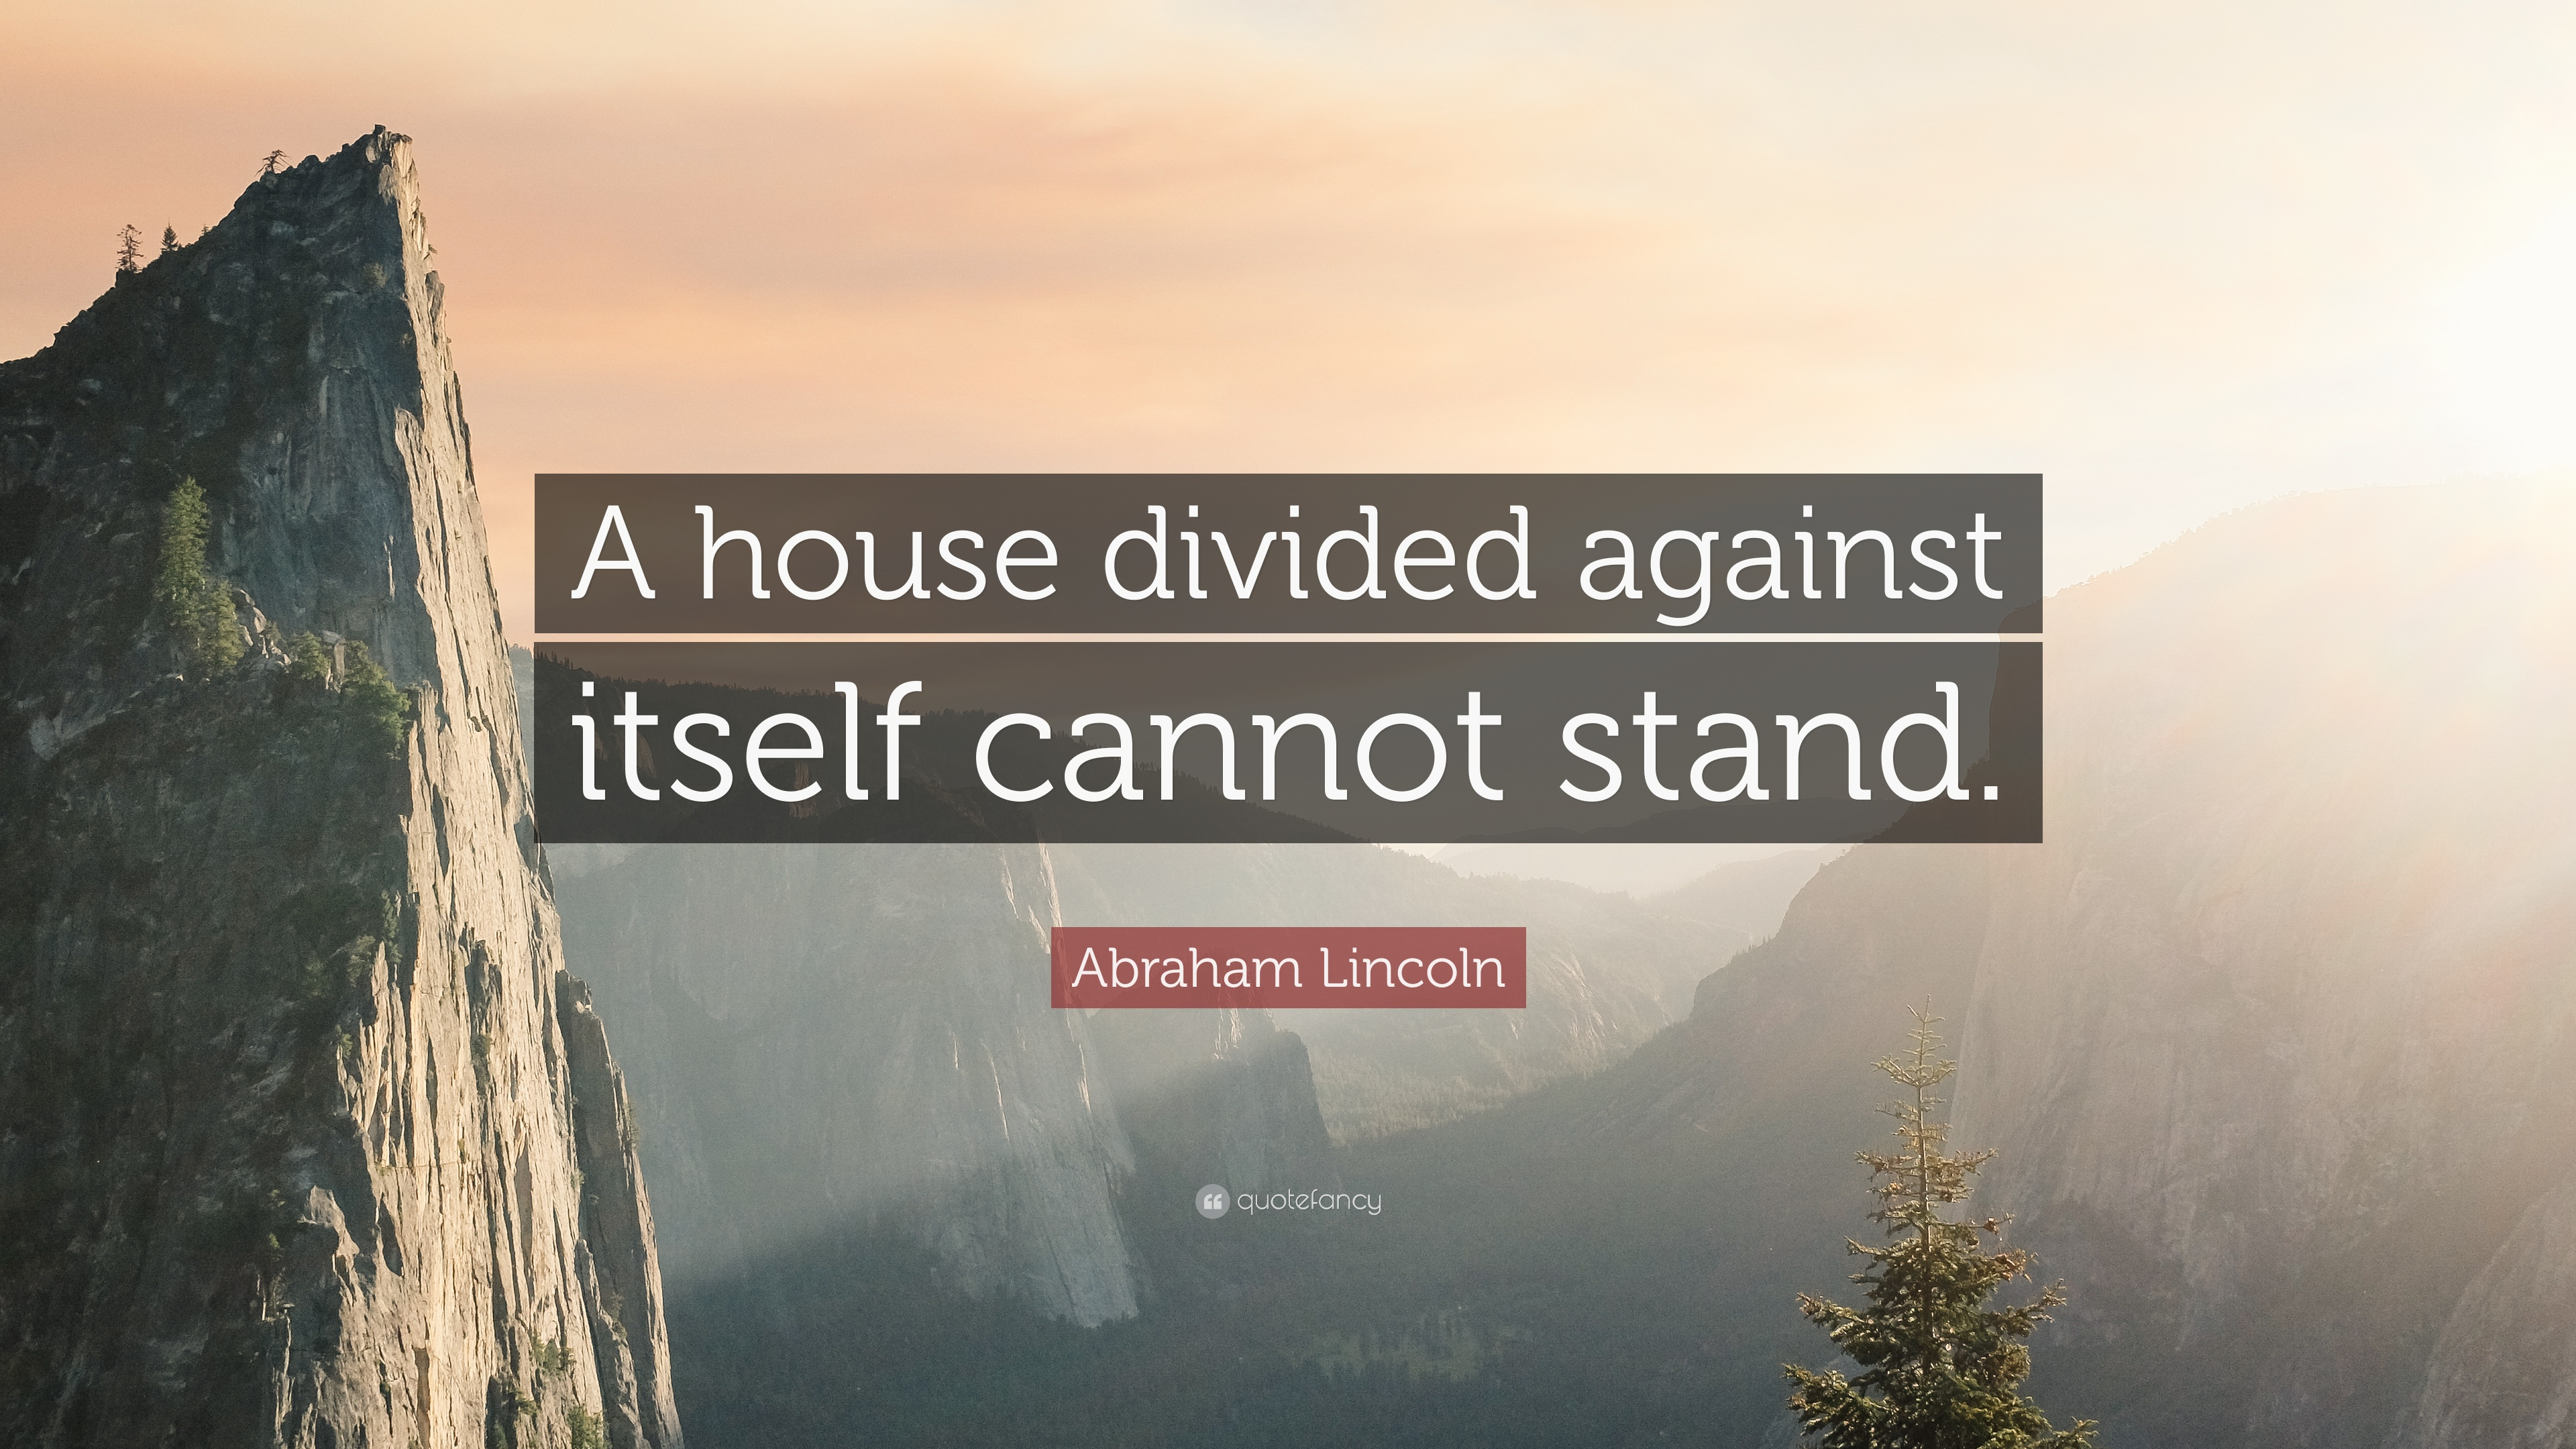 Abraham Lincoln Quote: U201cA House Divided Against Itself Cannot Stand.u201d